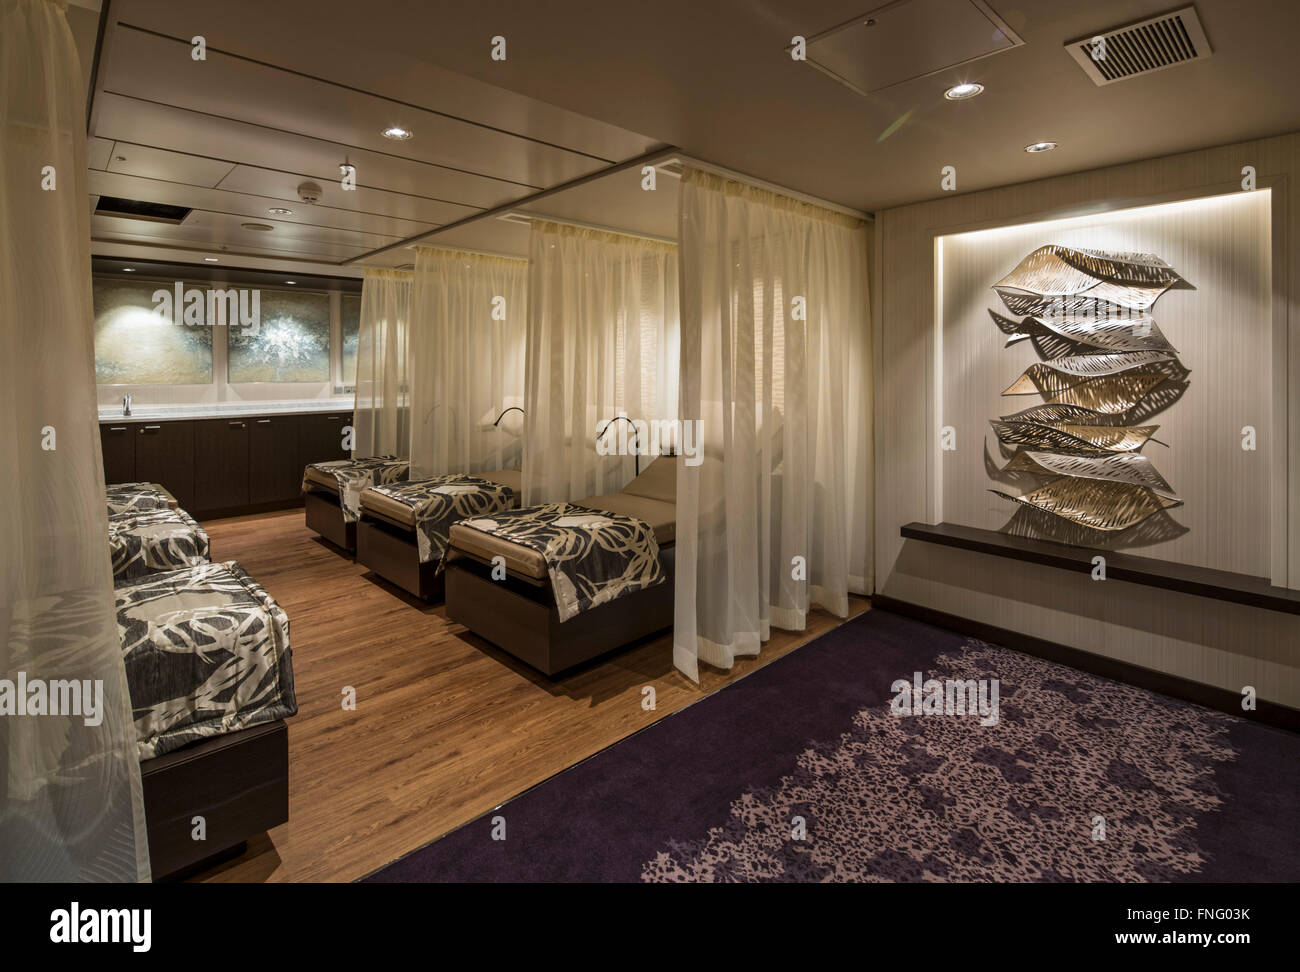 Treatment room relaxation area. Norwegian Cruise Ship – The Escape, Southampton, United Kingdom. Architect: SMC - Stock Image